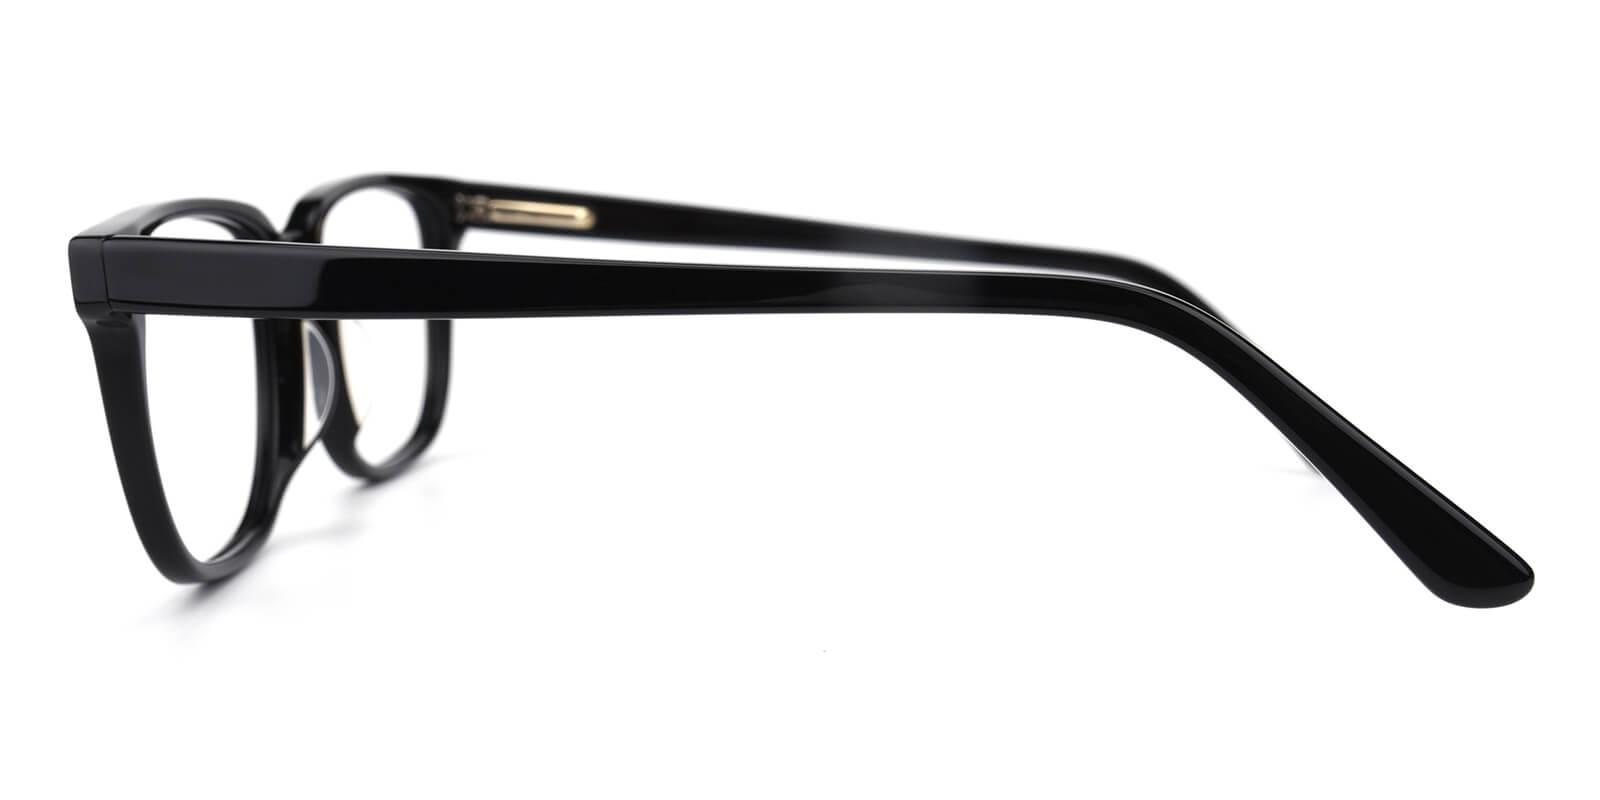 Tempiry-Black-Rectangle-Acetate-Eyeglasses-additional3